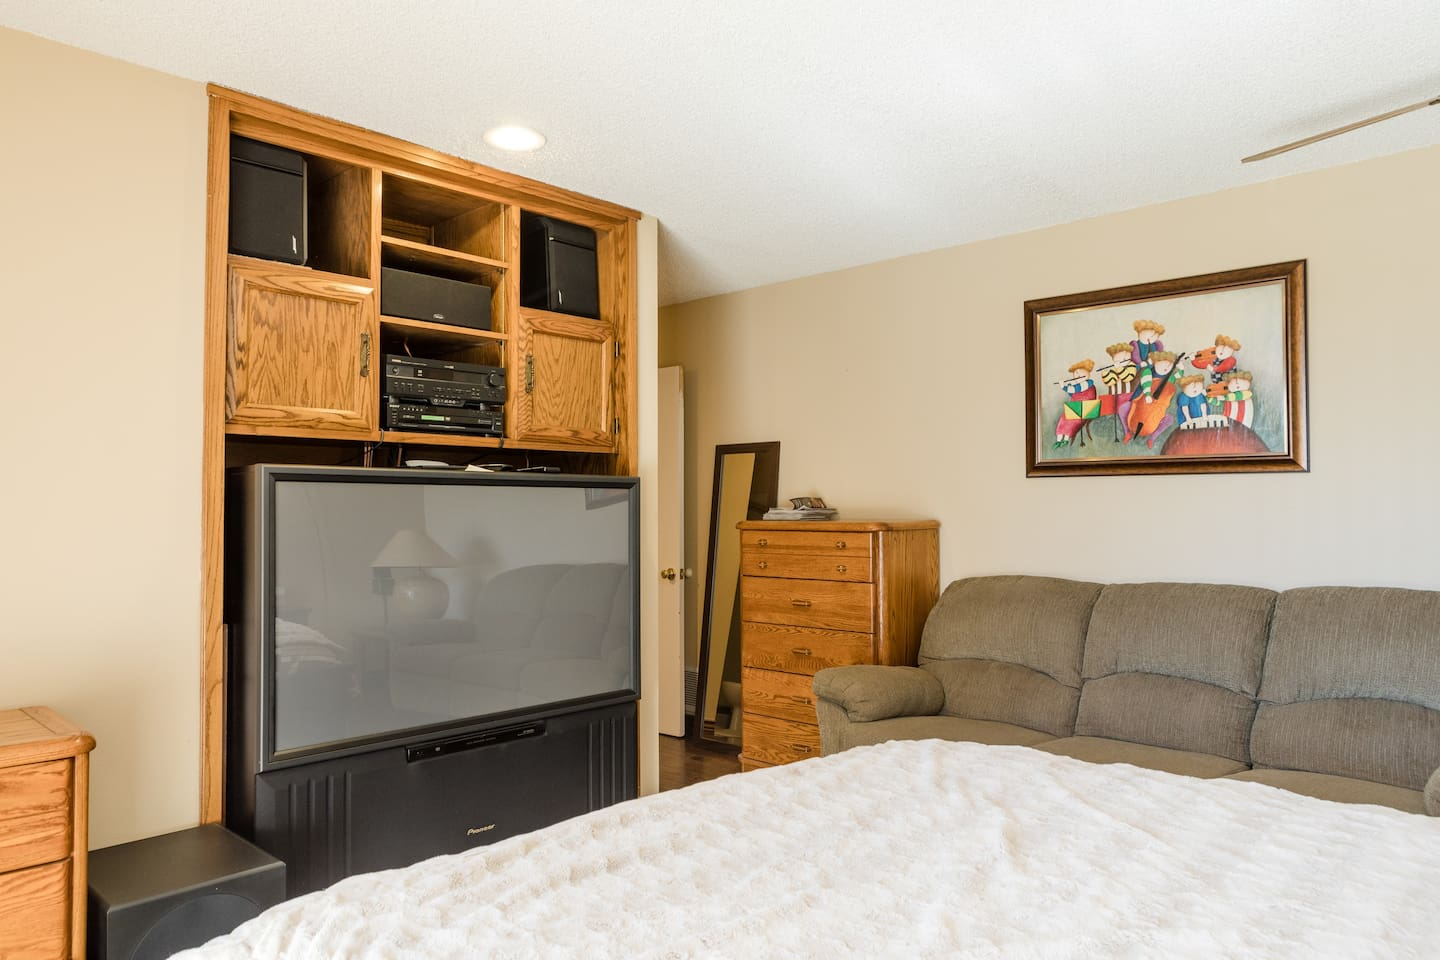 2nd queen size bed room with big screen TV and audio surrounding system